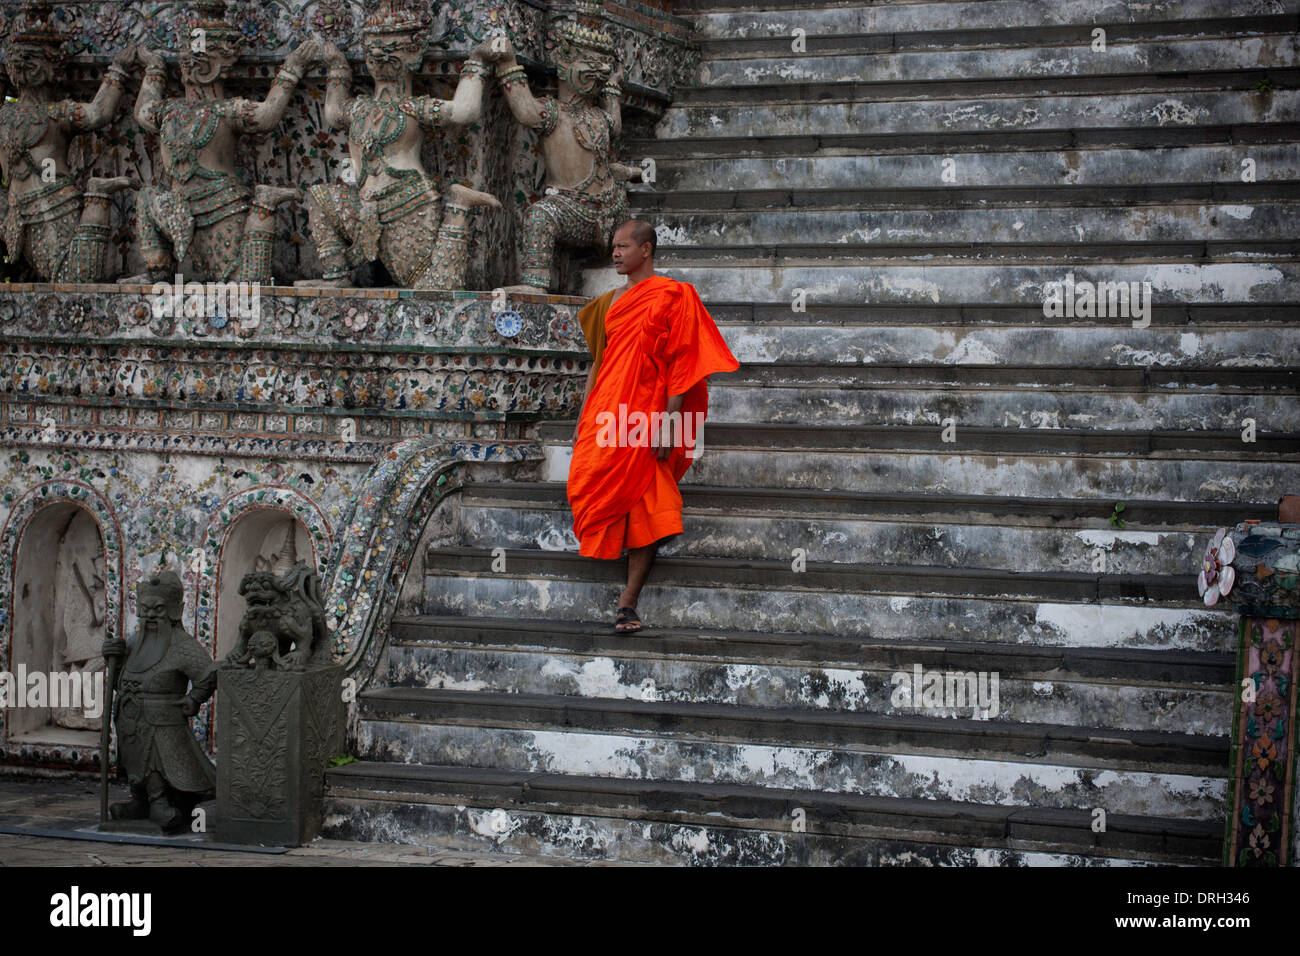 Monk descending the stairs at Wat Pho in Bangkok Thailand - Stock Image